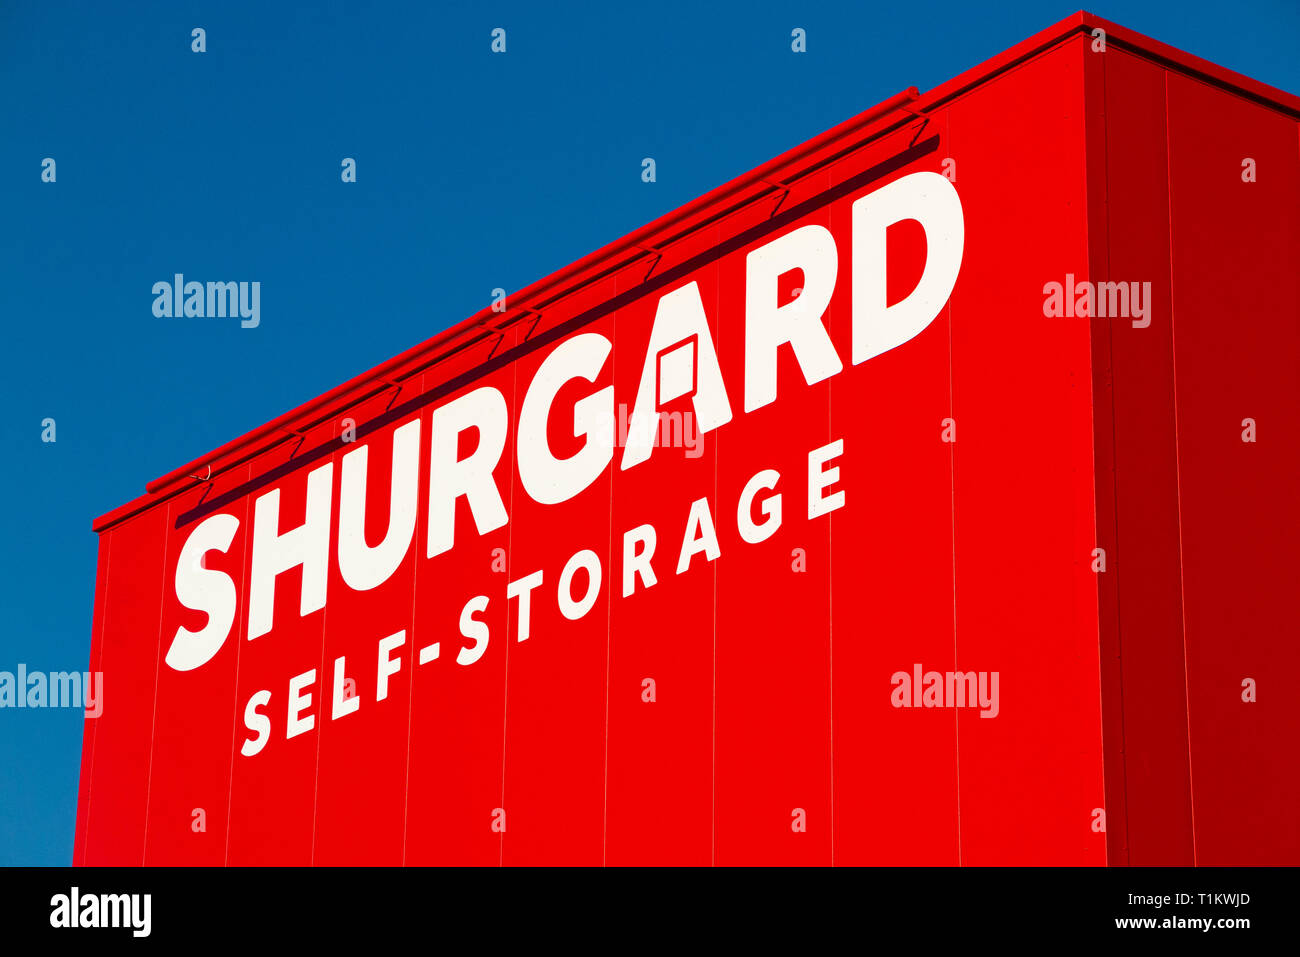 Shurgard self store ware house / self storage warehouse, and sign / signs for the self storage company. London. UK. (106) - Stock Image